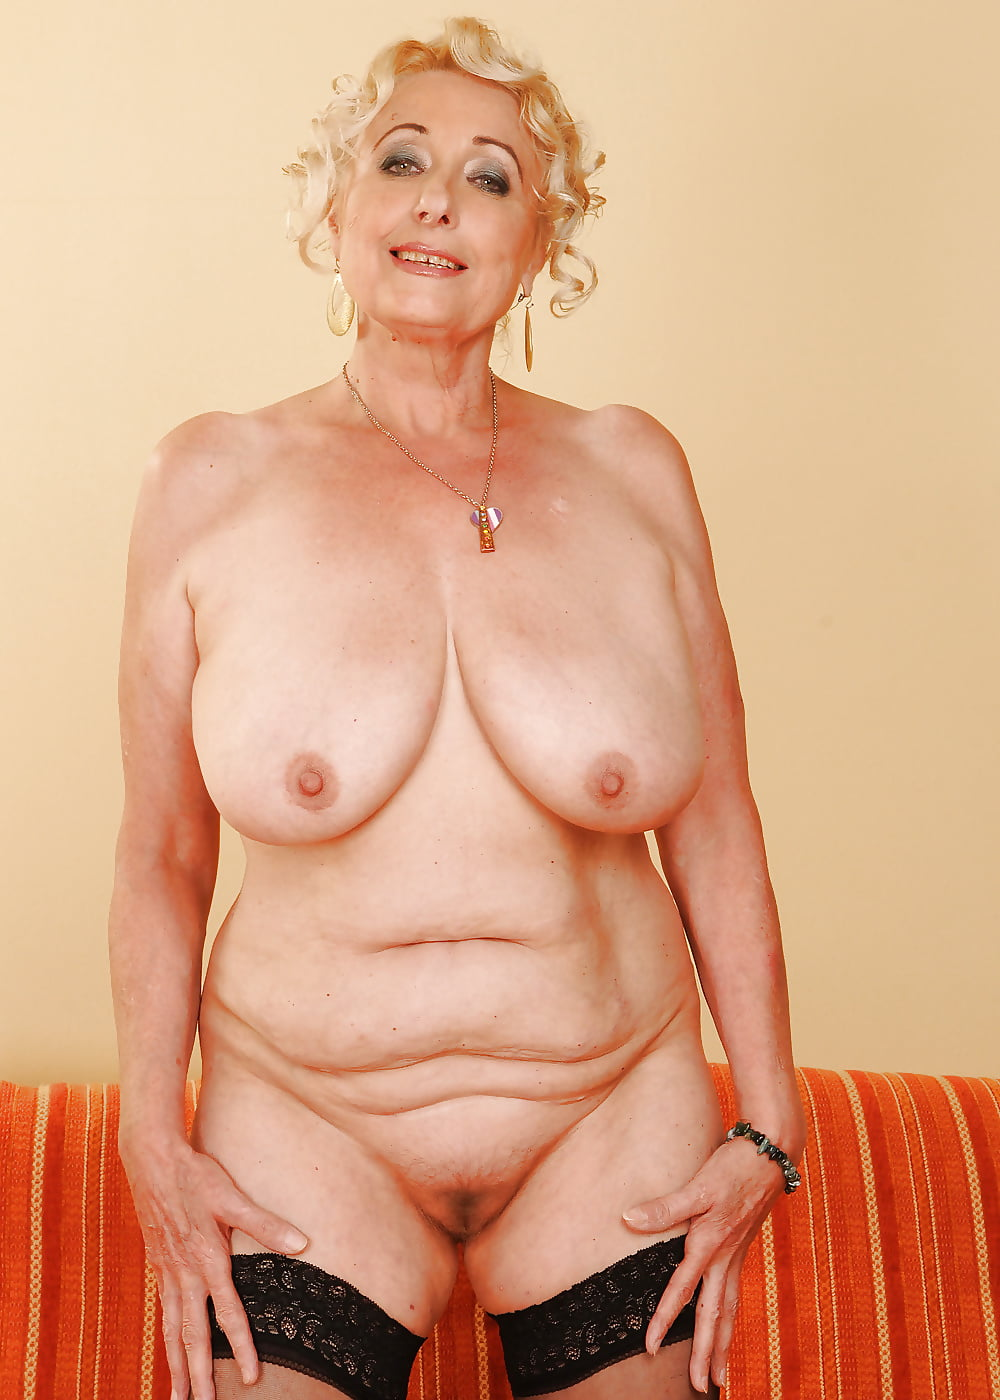 Grils older women naked in sa boob